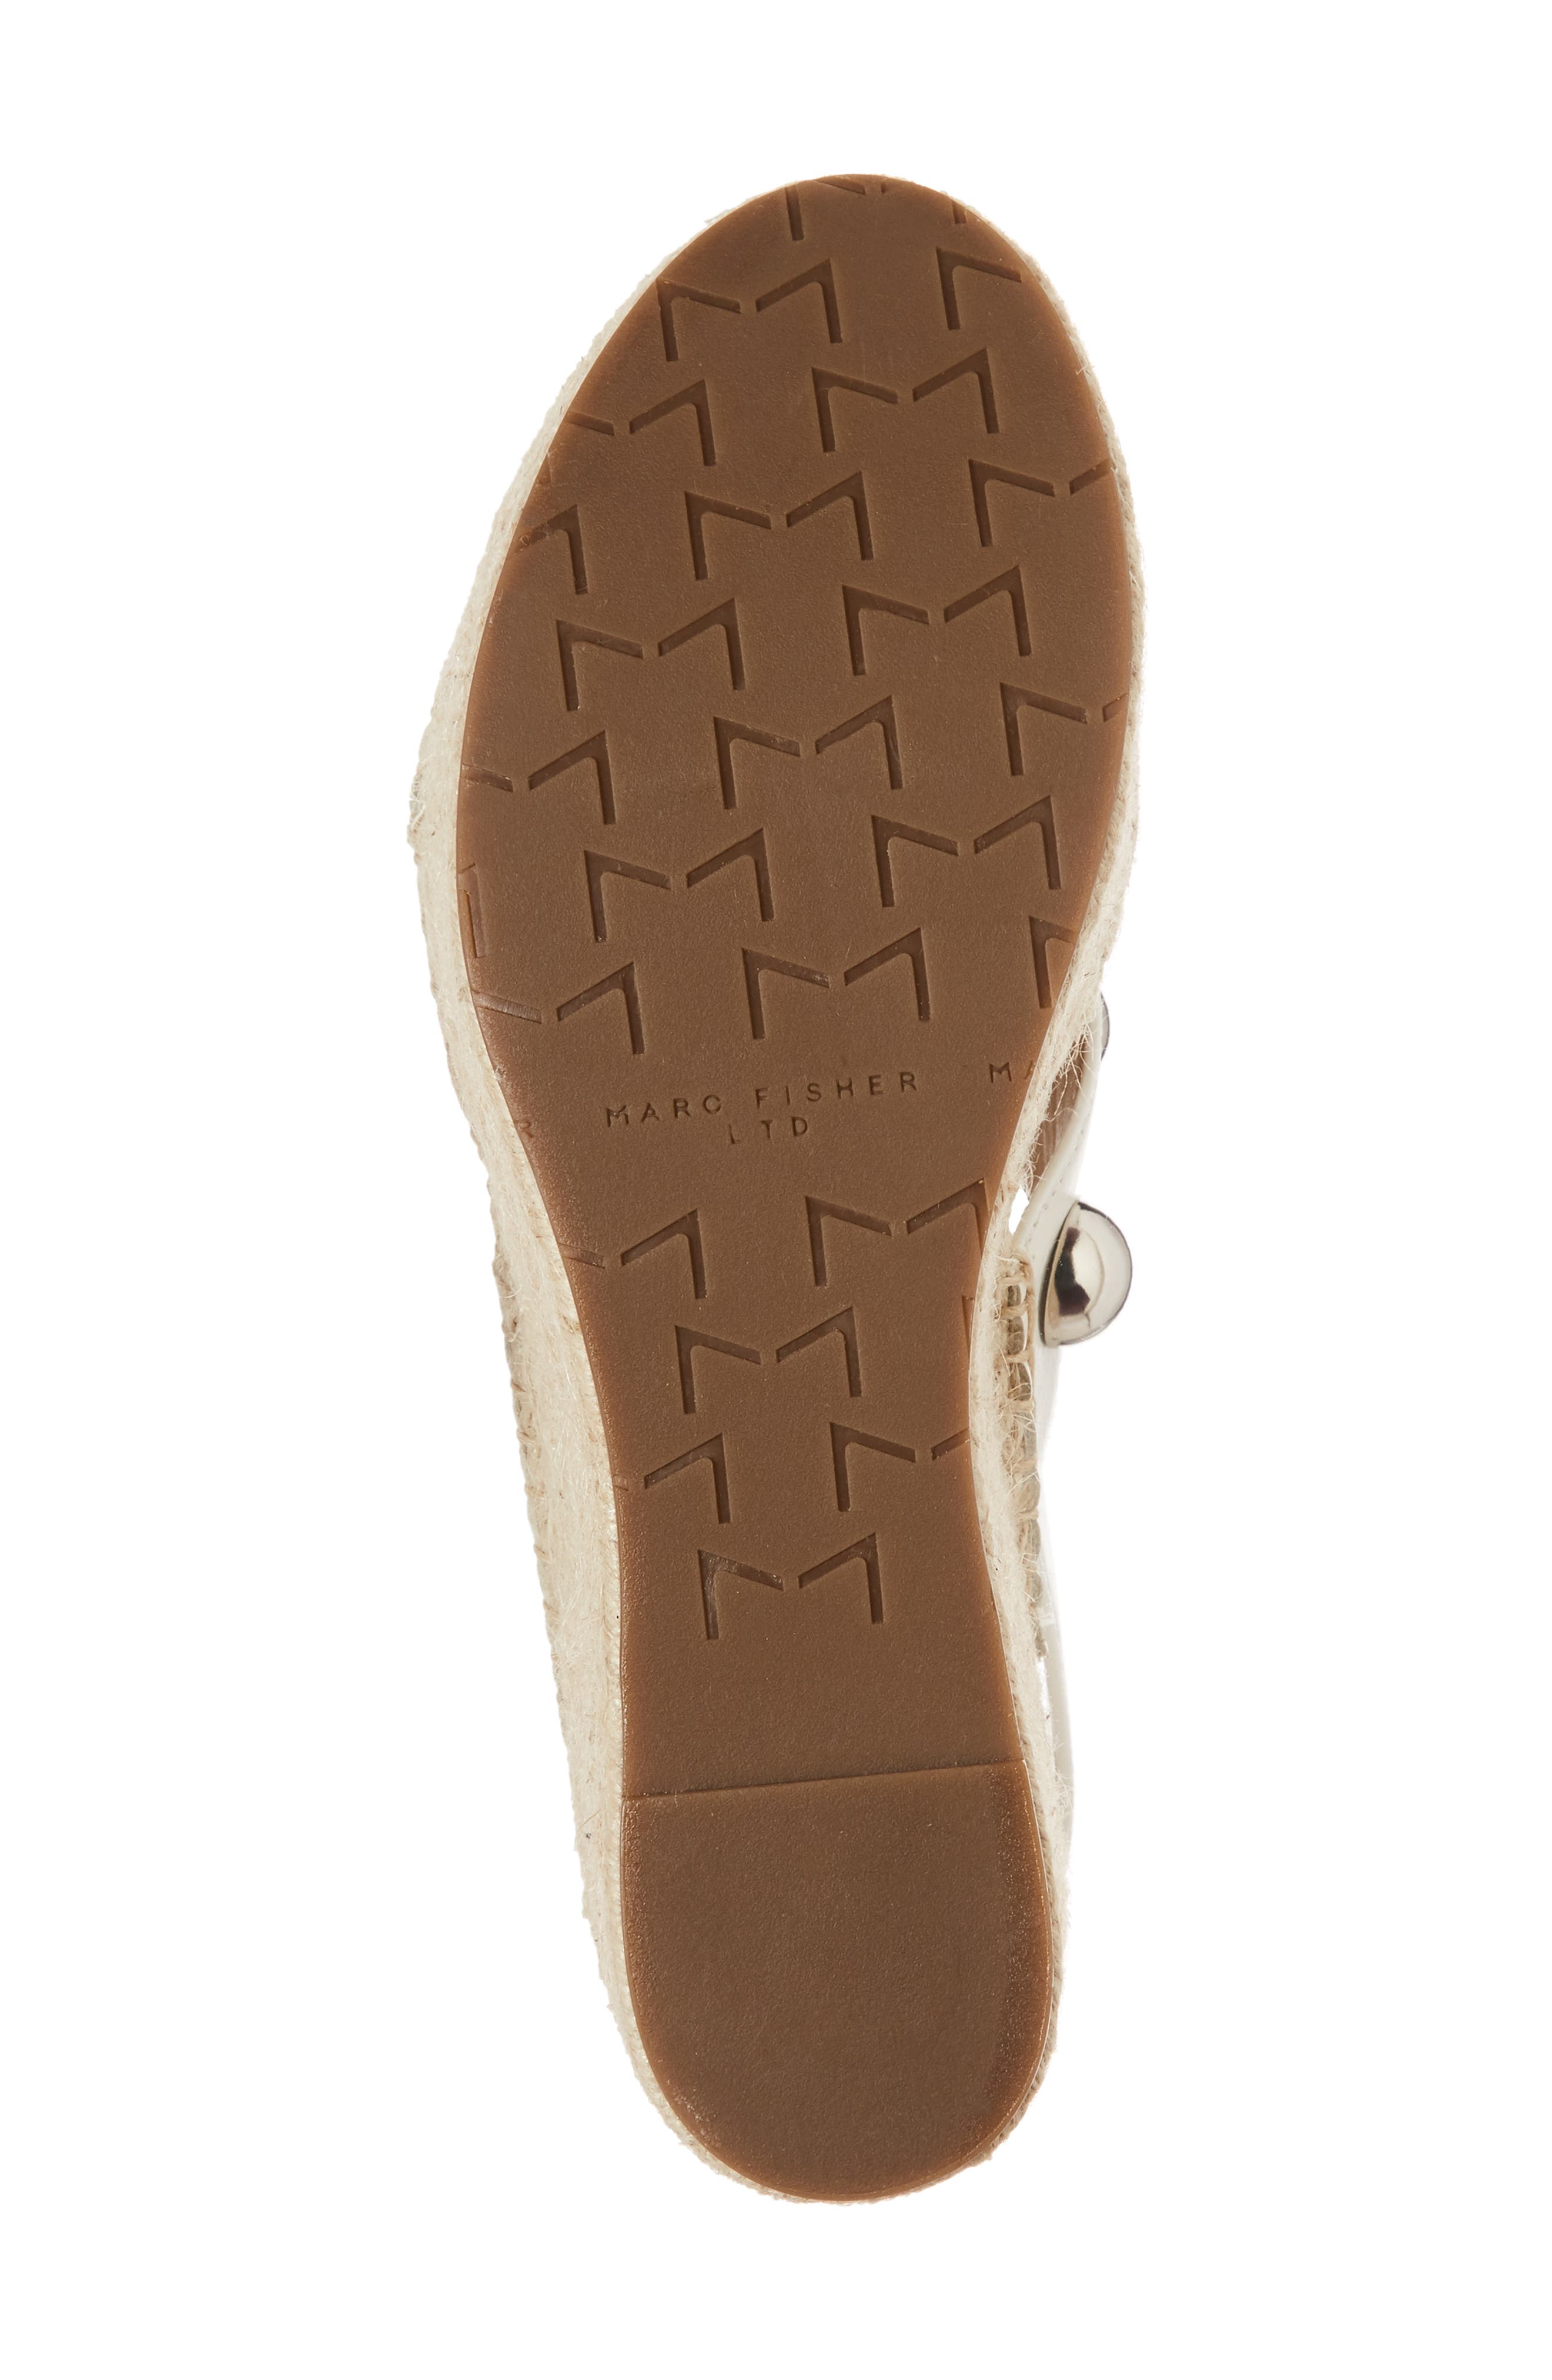 Rella Espadrille Platform Sandal,                             Alternate thumbnail 6, color,                             Ivory Leather